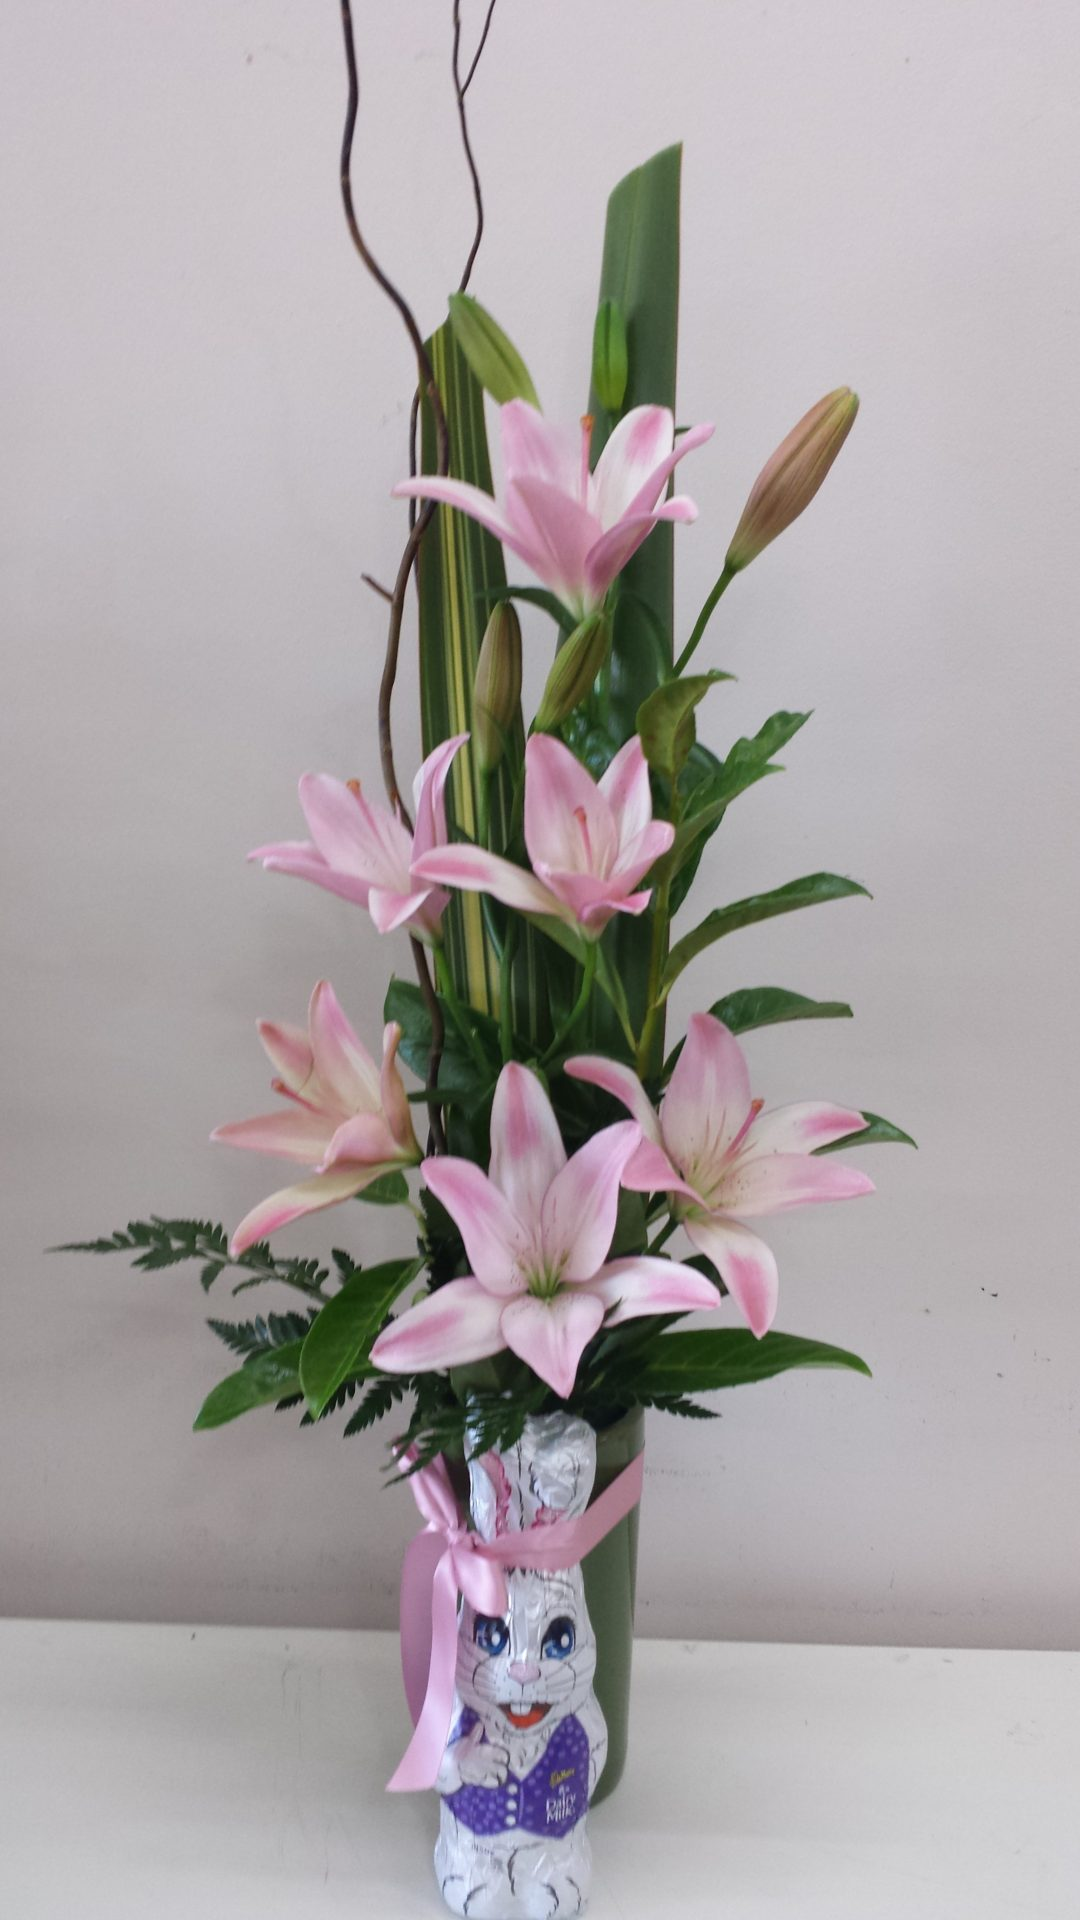 Ceramic Vase with lilies and Cadbury bunny